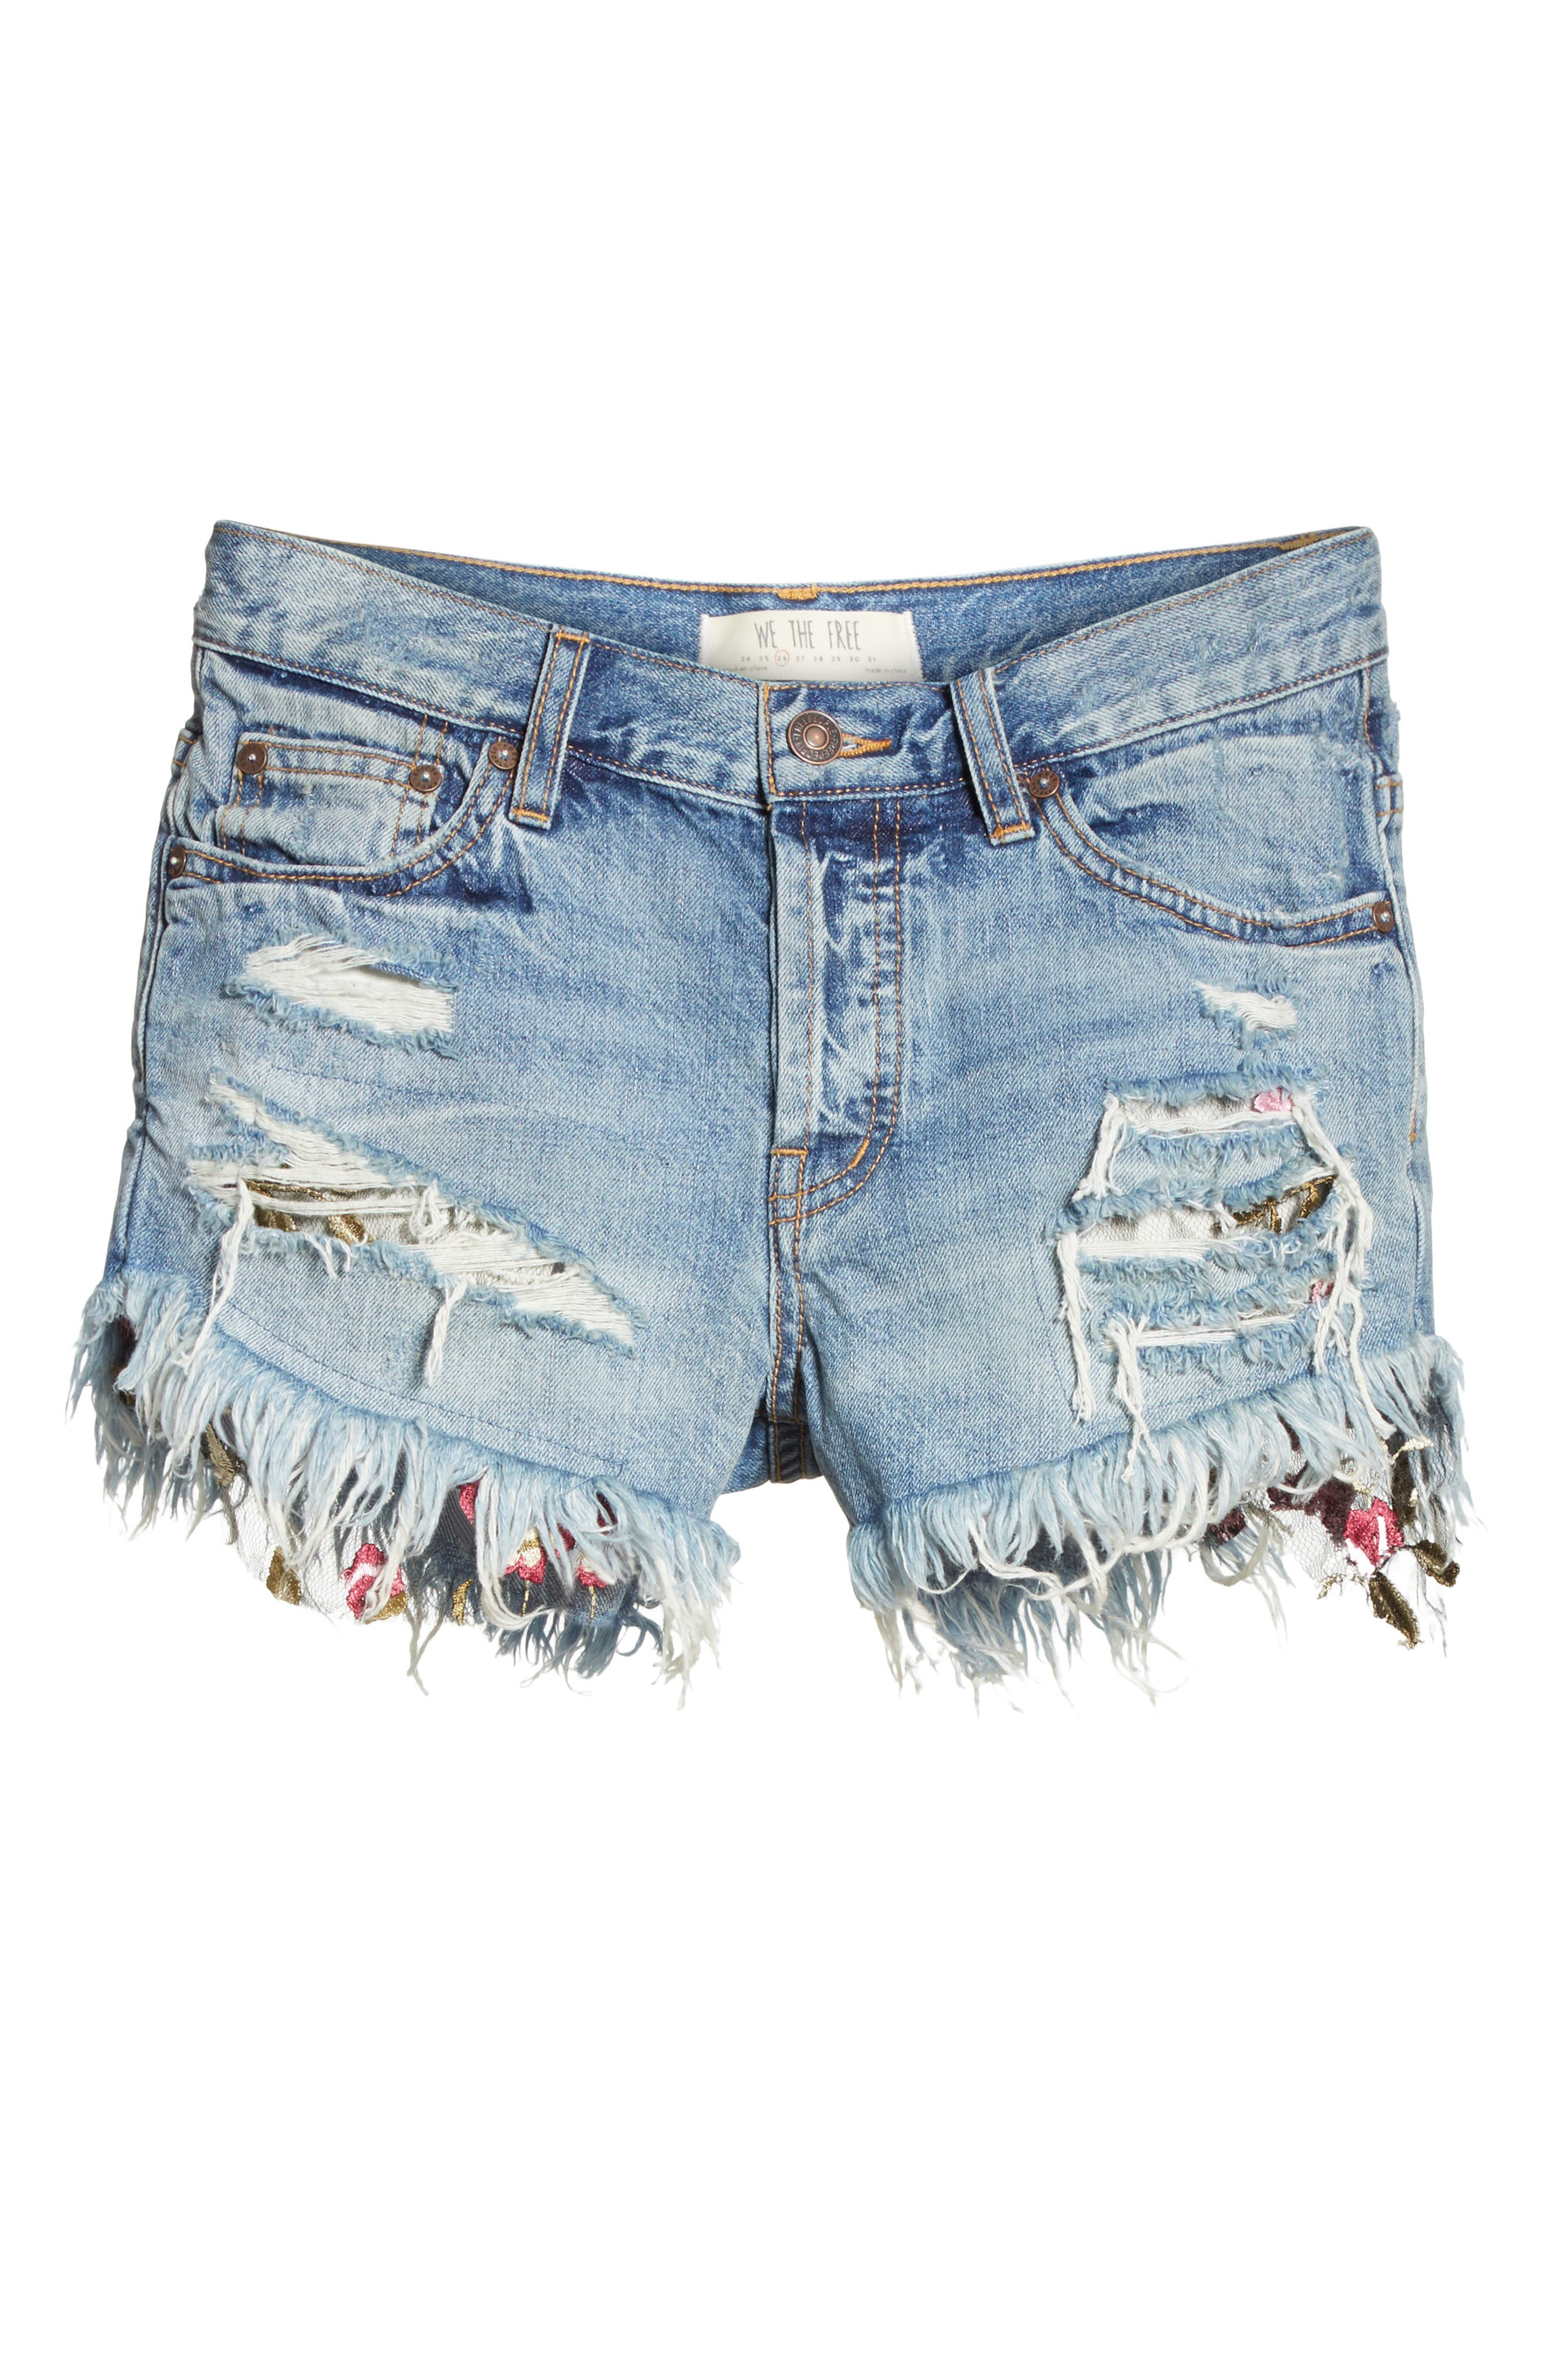 Embroidered Ripped Shorts,                             Alternate thumbnail 6, color,                             400